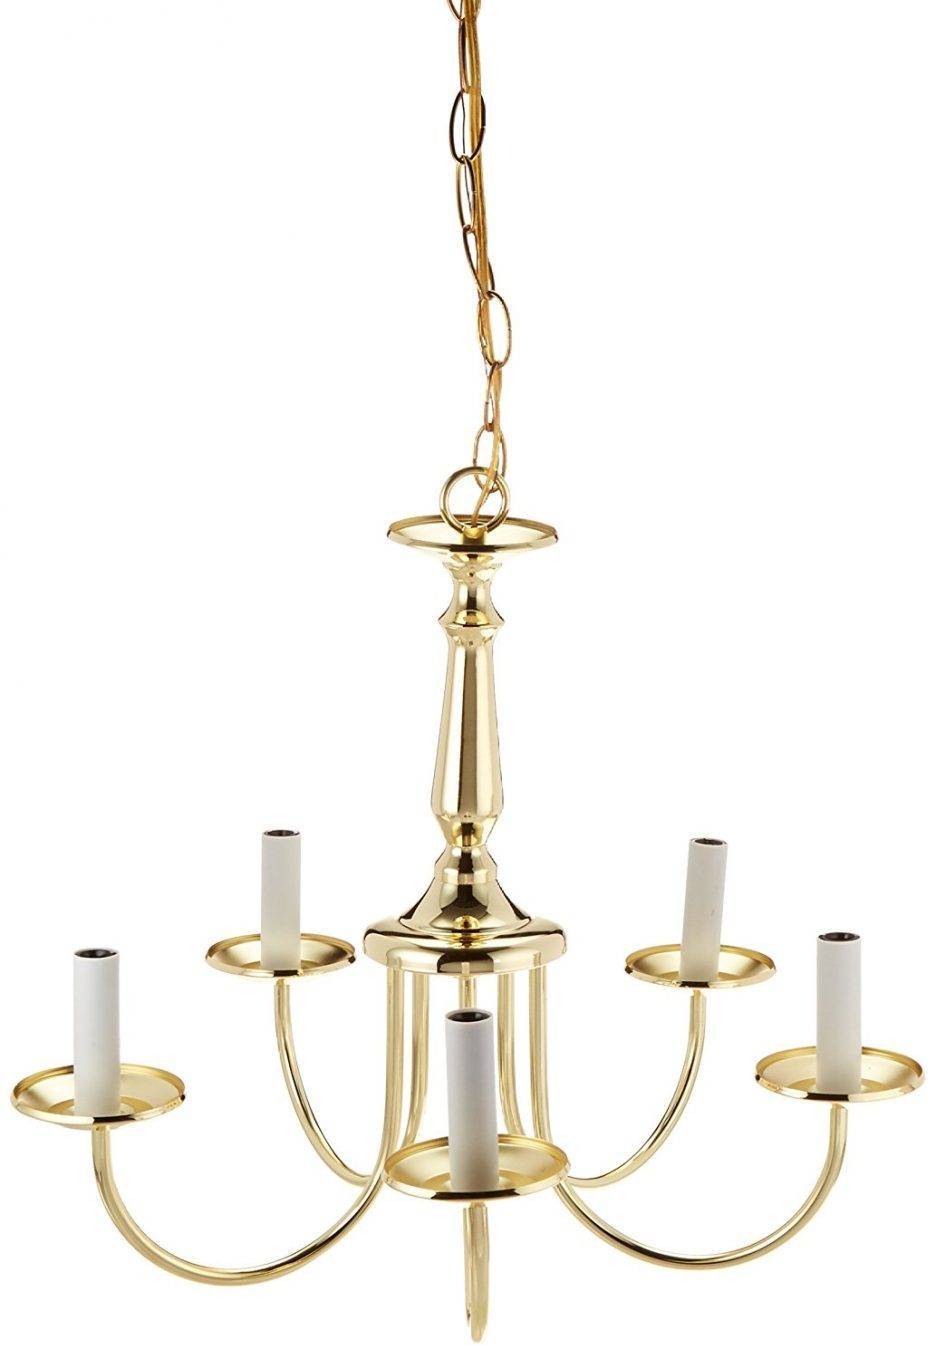 Chandelier : Lowes Outdoor Lighting Motion Sensor Pendant Light throughout Patriot Lighting Pendants (Image 4 of 15)